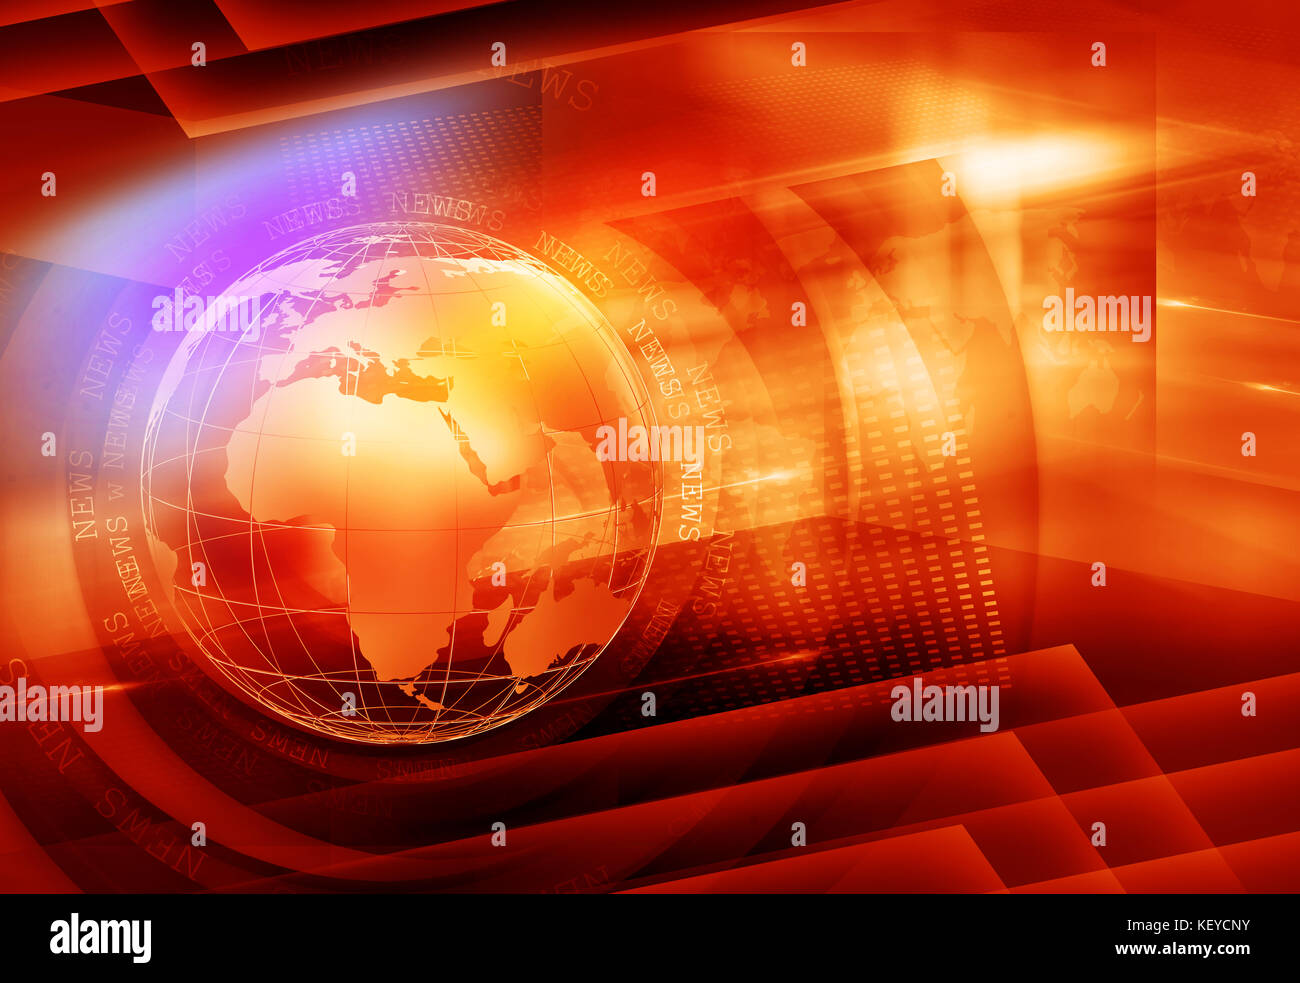 Graphical Colorful News Background - Stock Image